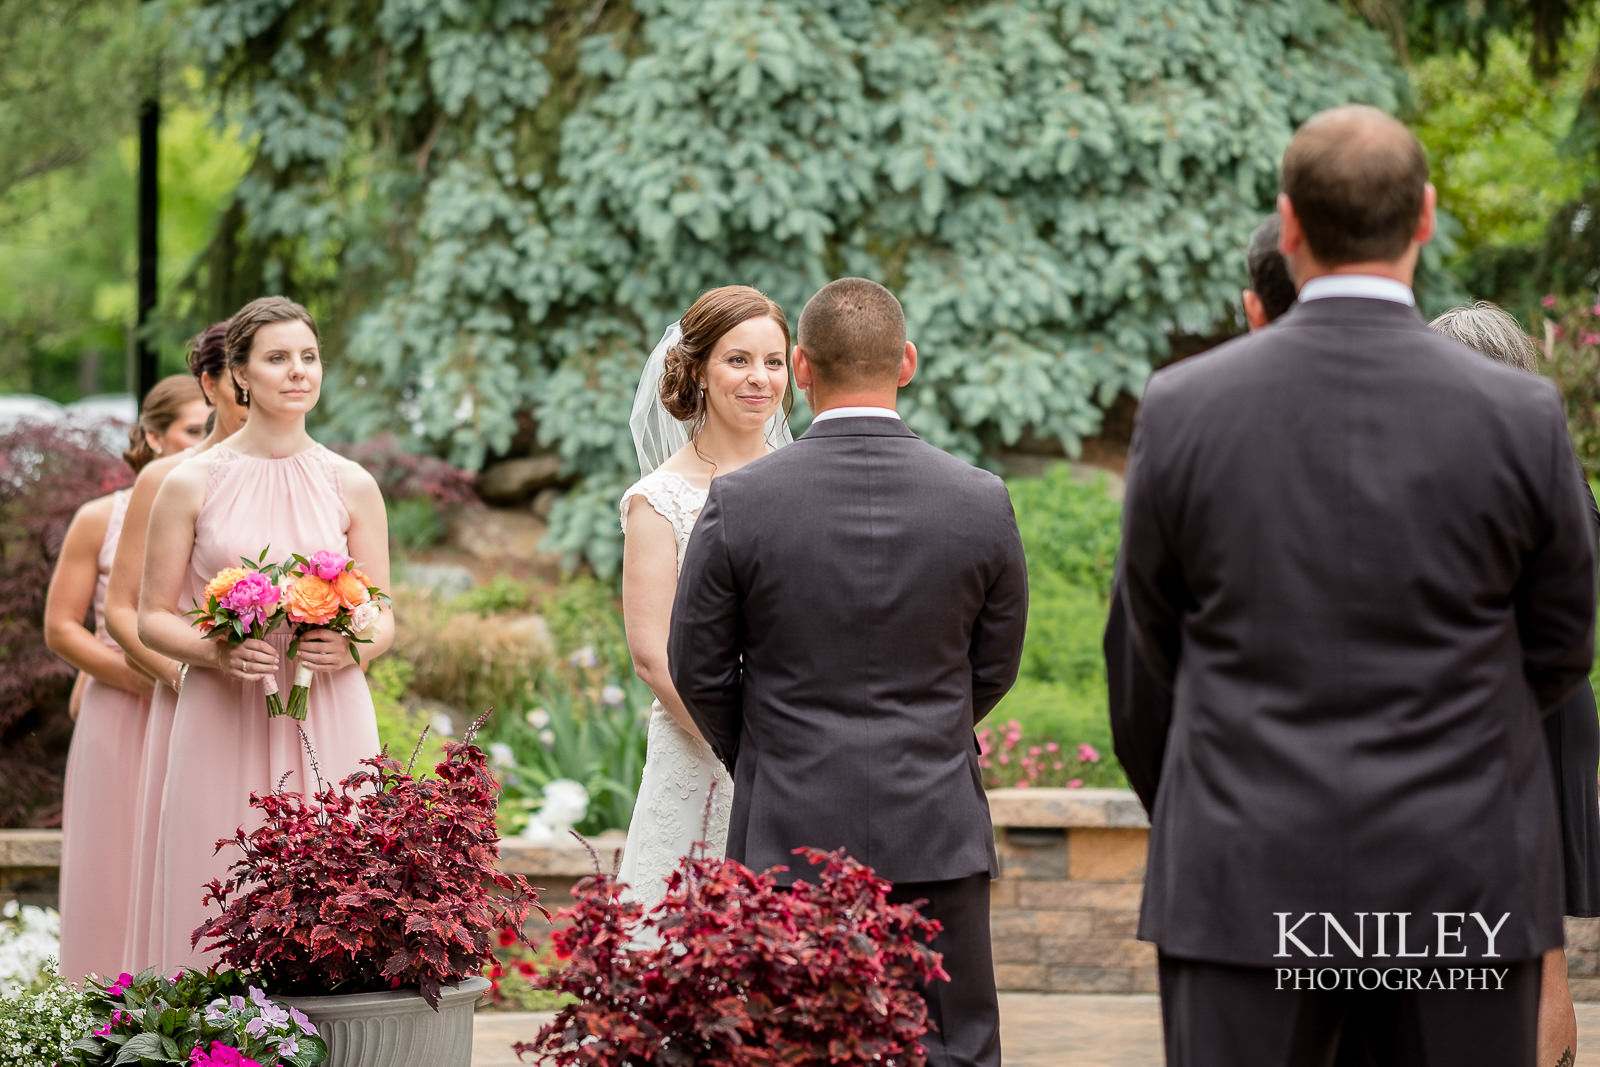 055 - Ravenwood Golf Club wedding pictures - Rochester NY - Kniley Photography - XT2B0937.jpg